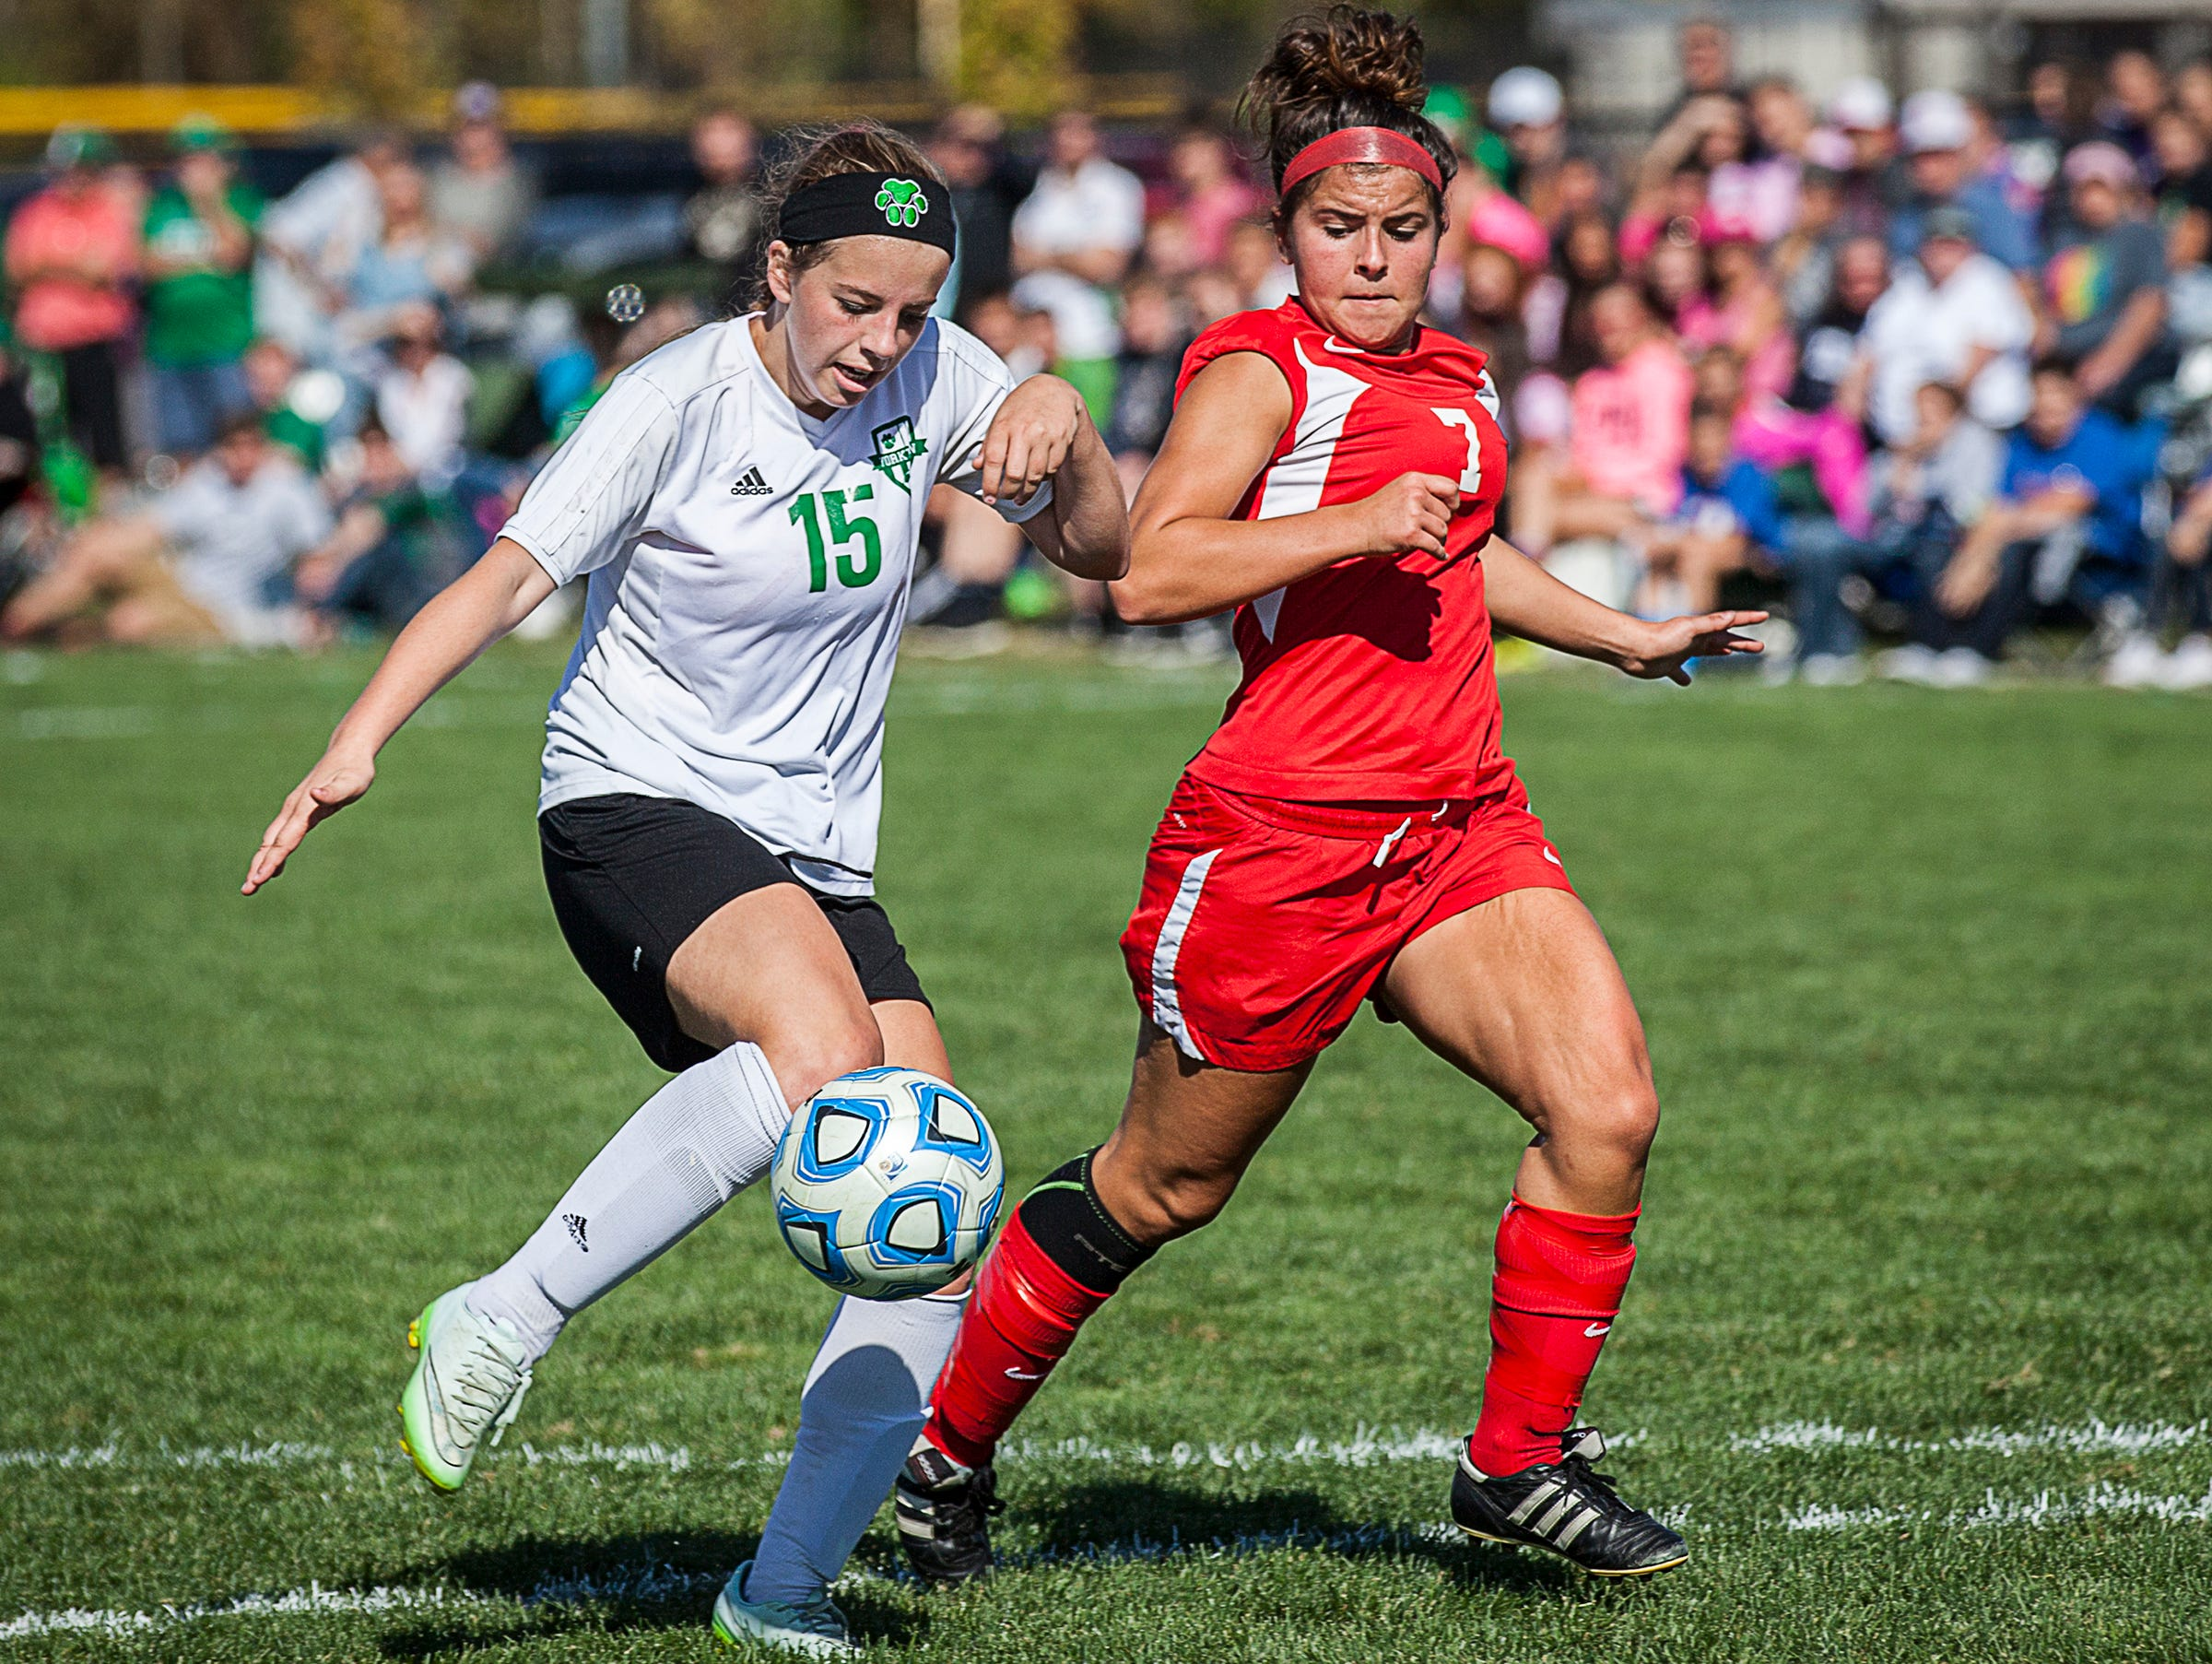 Yorktown's Sarah Wilhoite dribbles past Jay County's Gabbie Mann during their game at the Yorktown Sports Park on Saturday, Oct. 10, 2015.